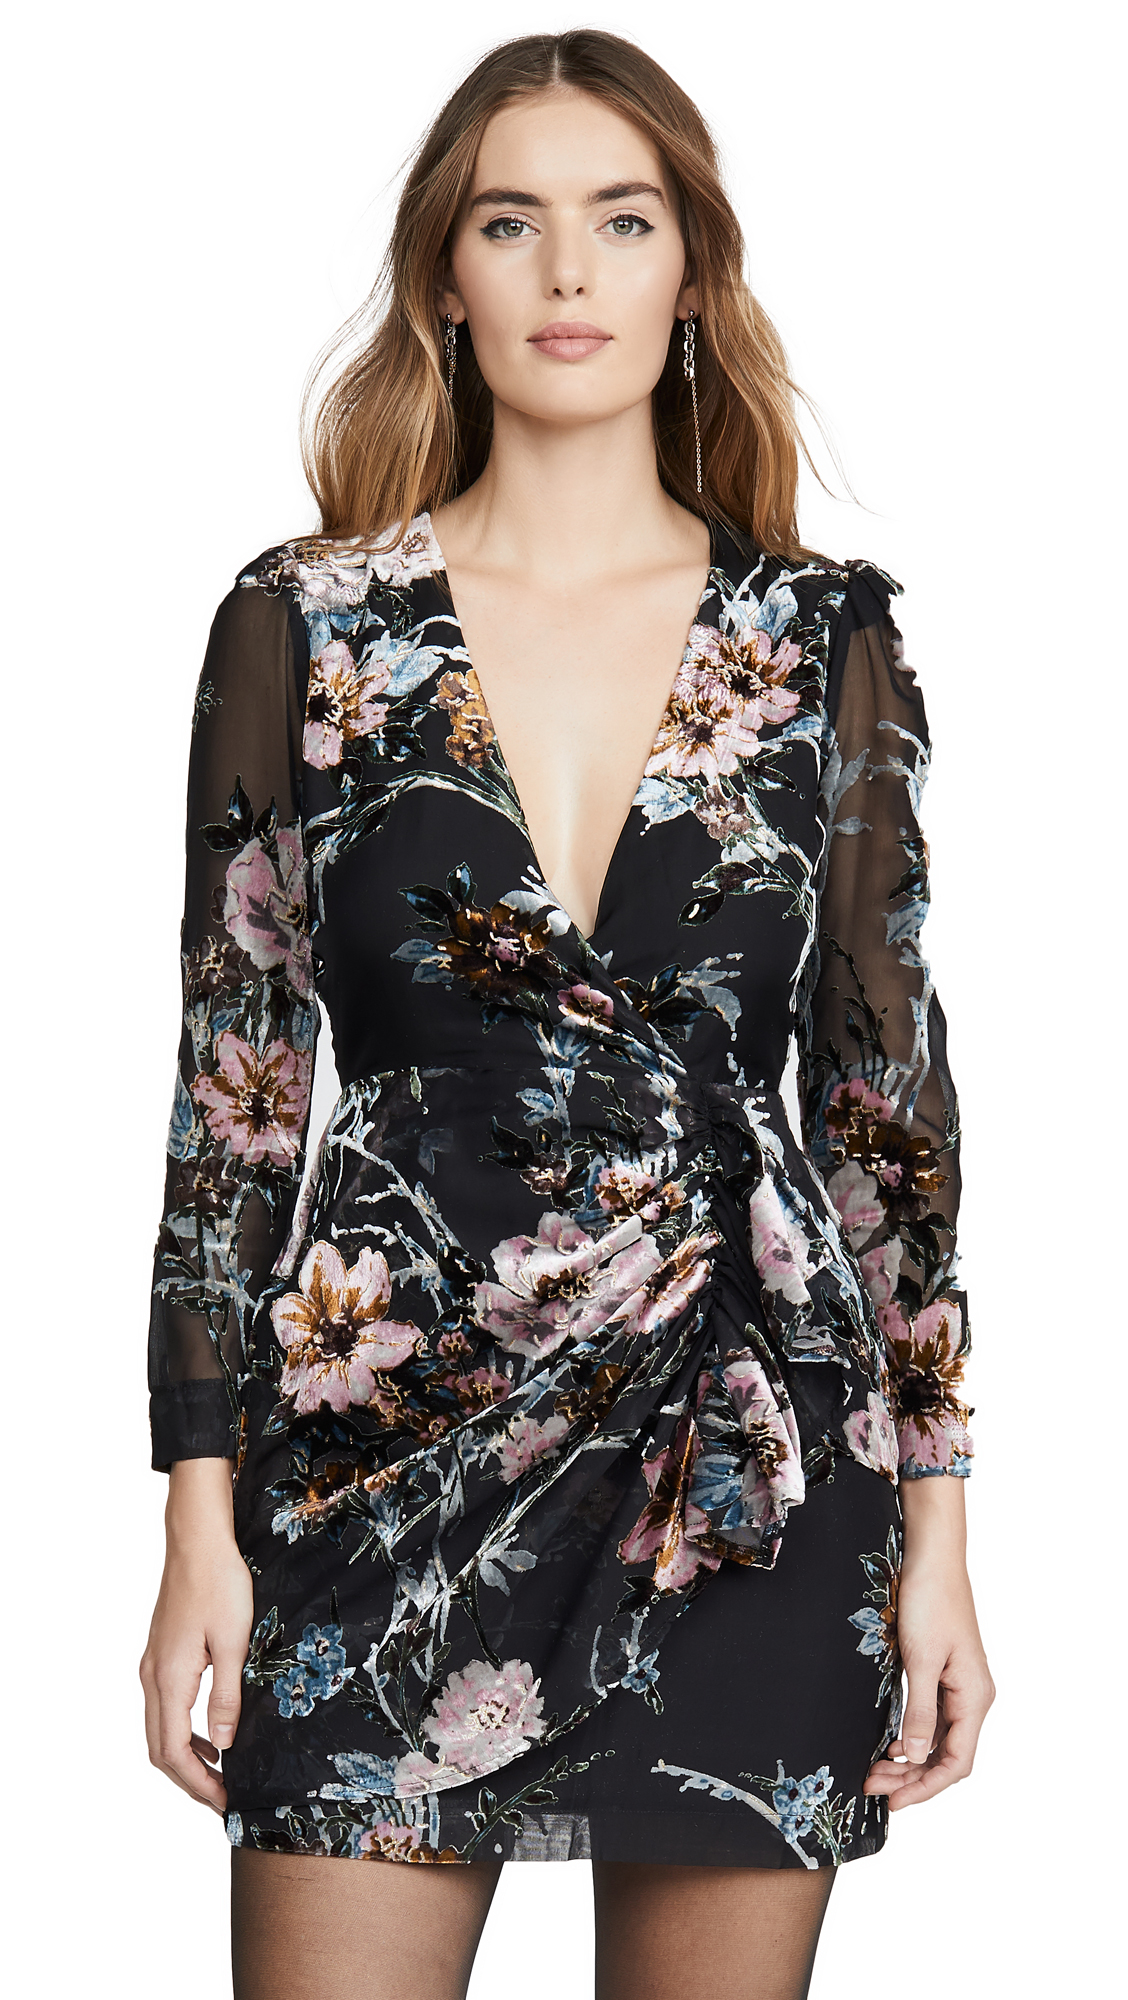 Yumi Kim Wild Bloom Dress - 70% Off Sale